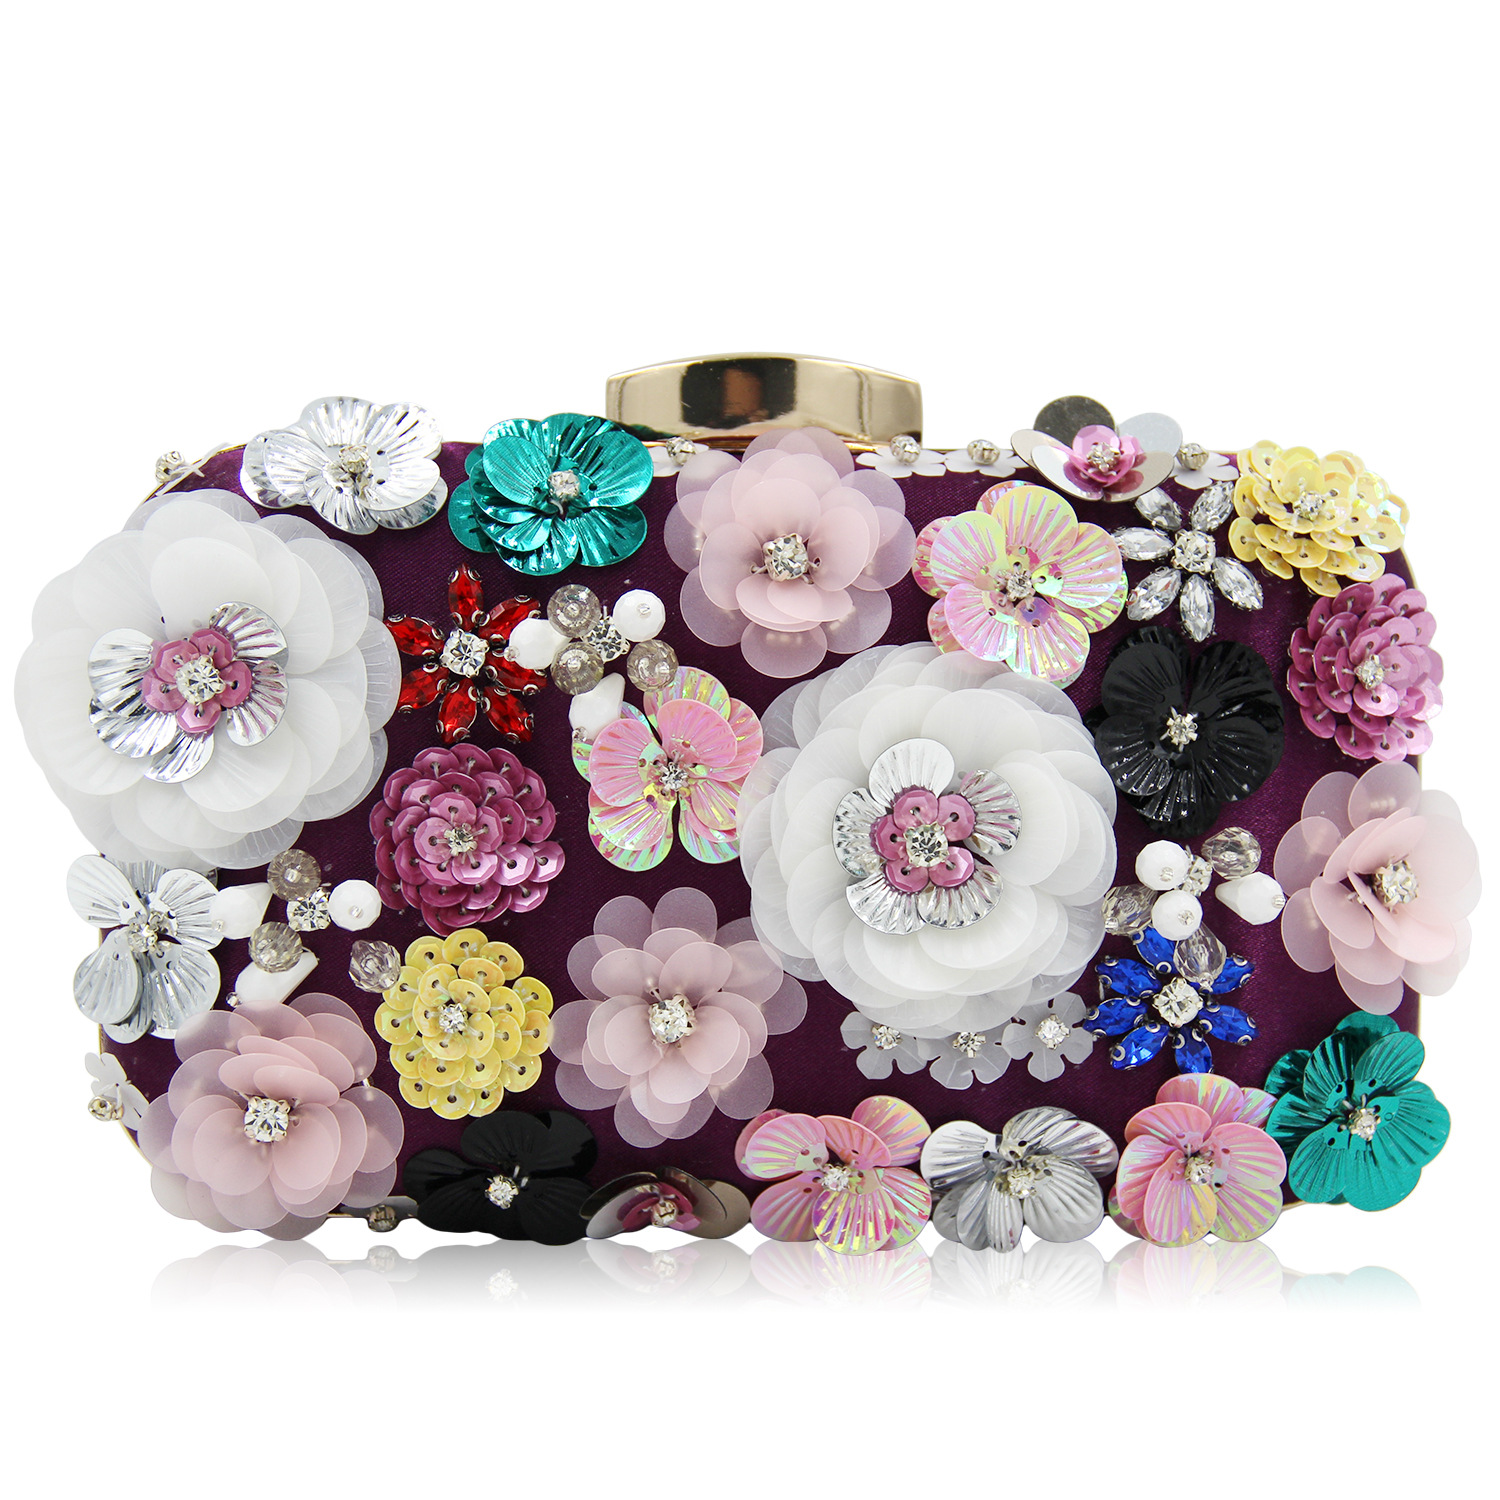 Women Clutch Bag Flowers Glassbeads Embroidery Party Day Clutches Purses Pearl Ladies Clutch Evening Bags Chain Shoulder Bags luxury crystal clutch handbag women evening bag wedding party purses banquet